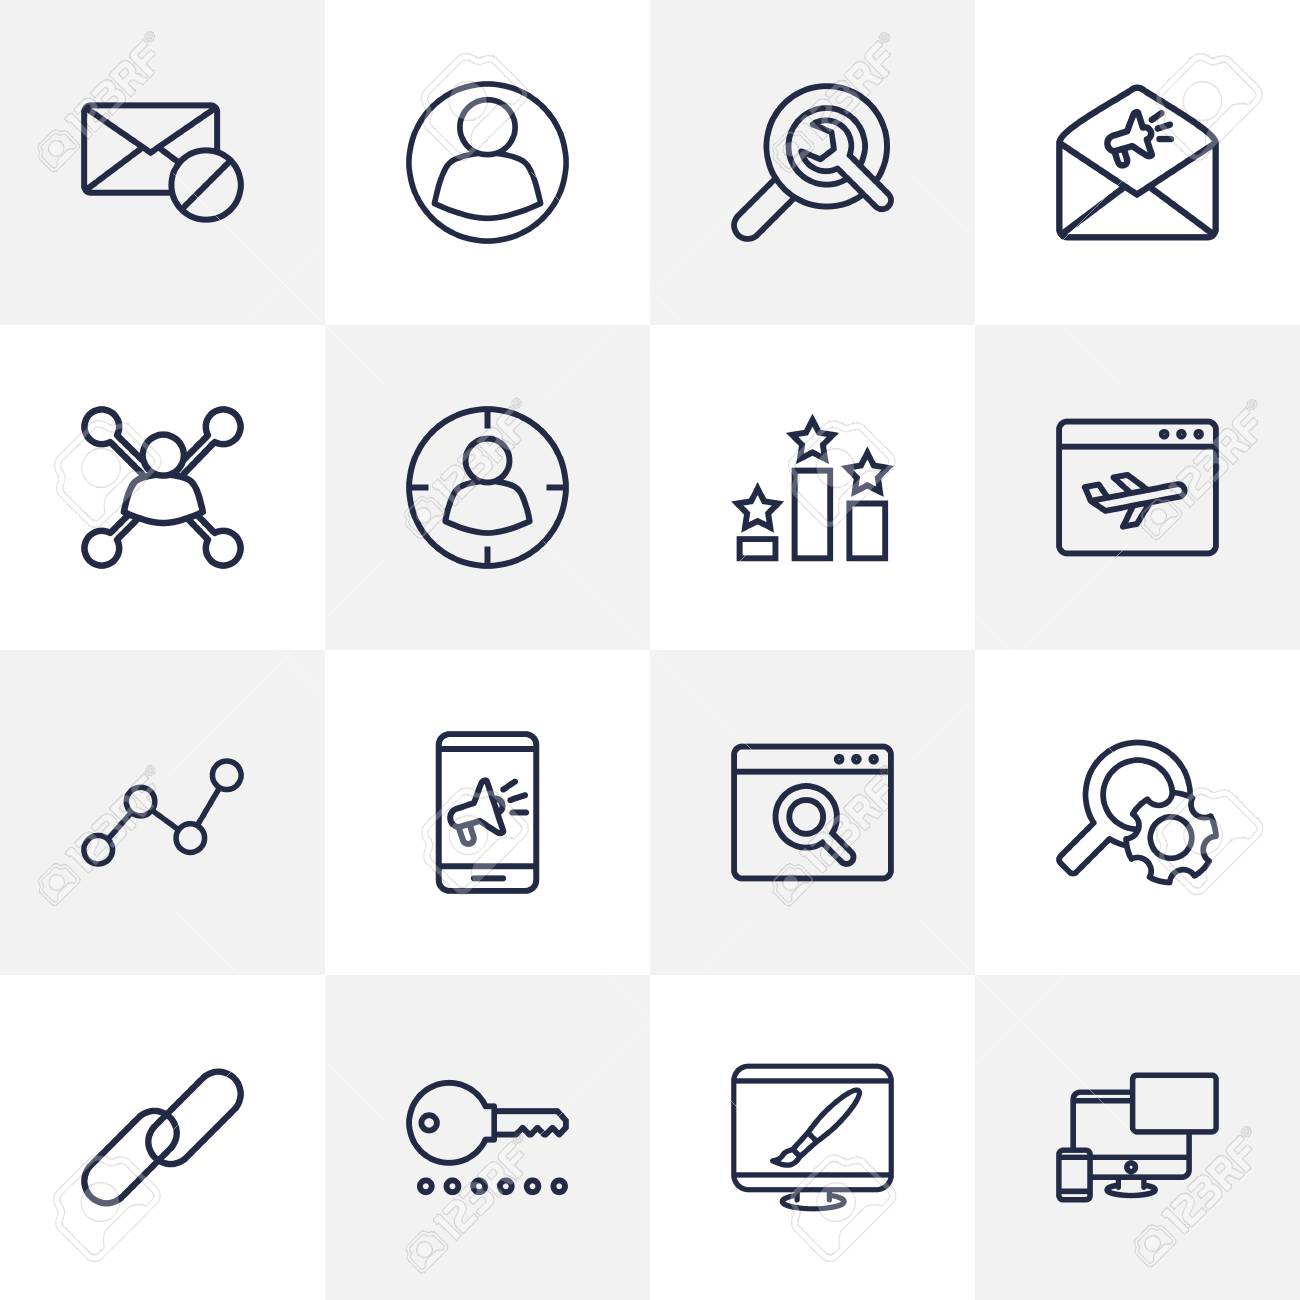 Set Of 16 Search Outline Icons Set Collection Of Password, Url,